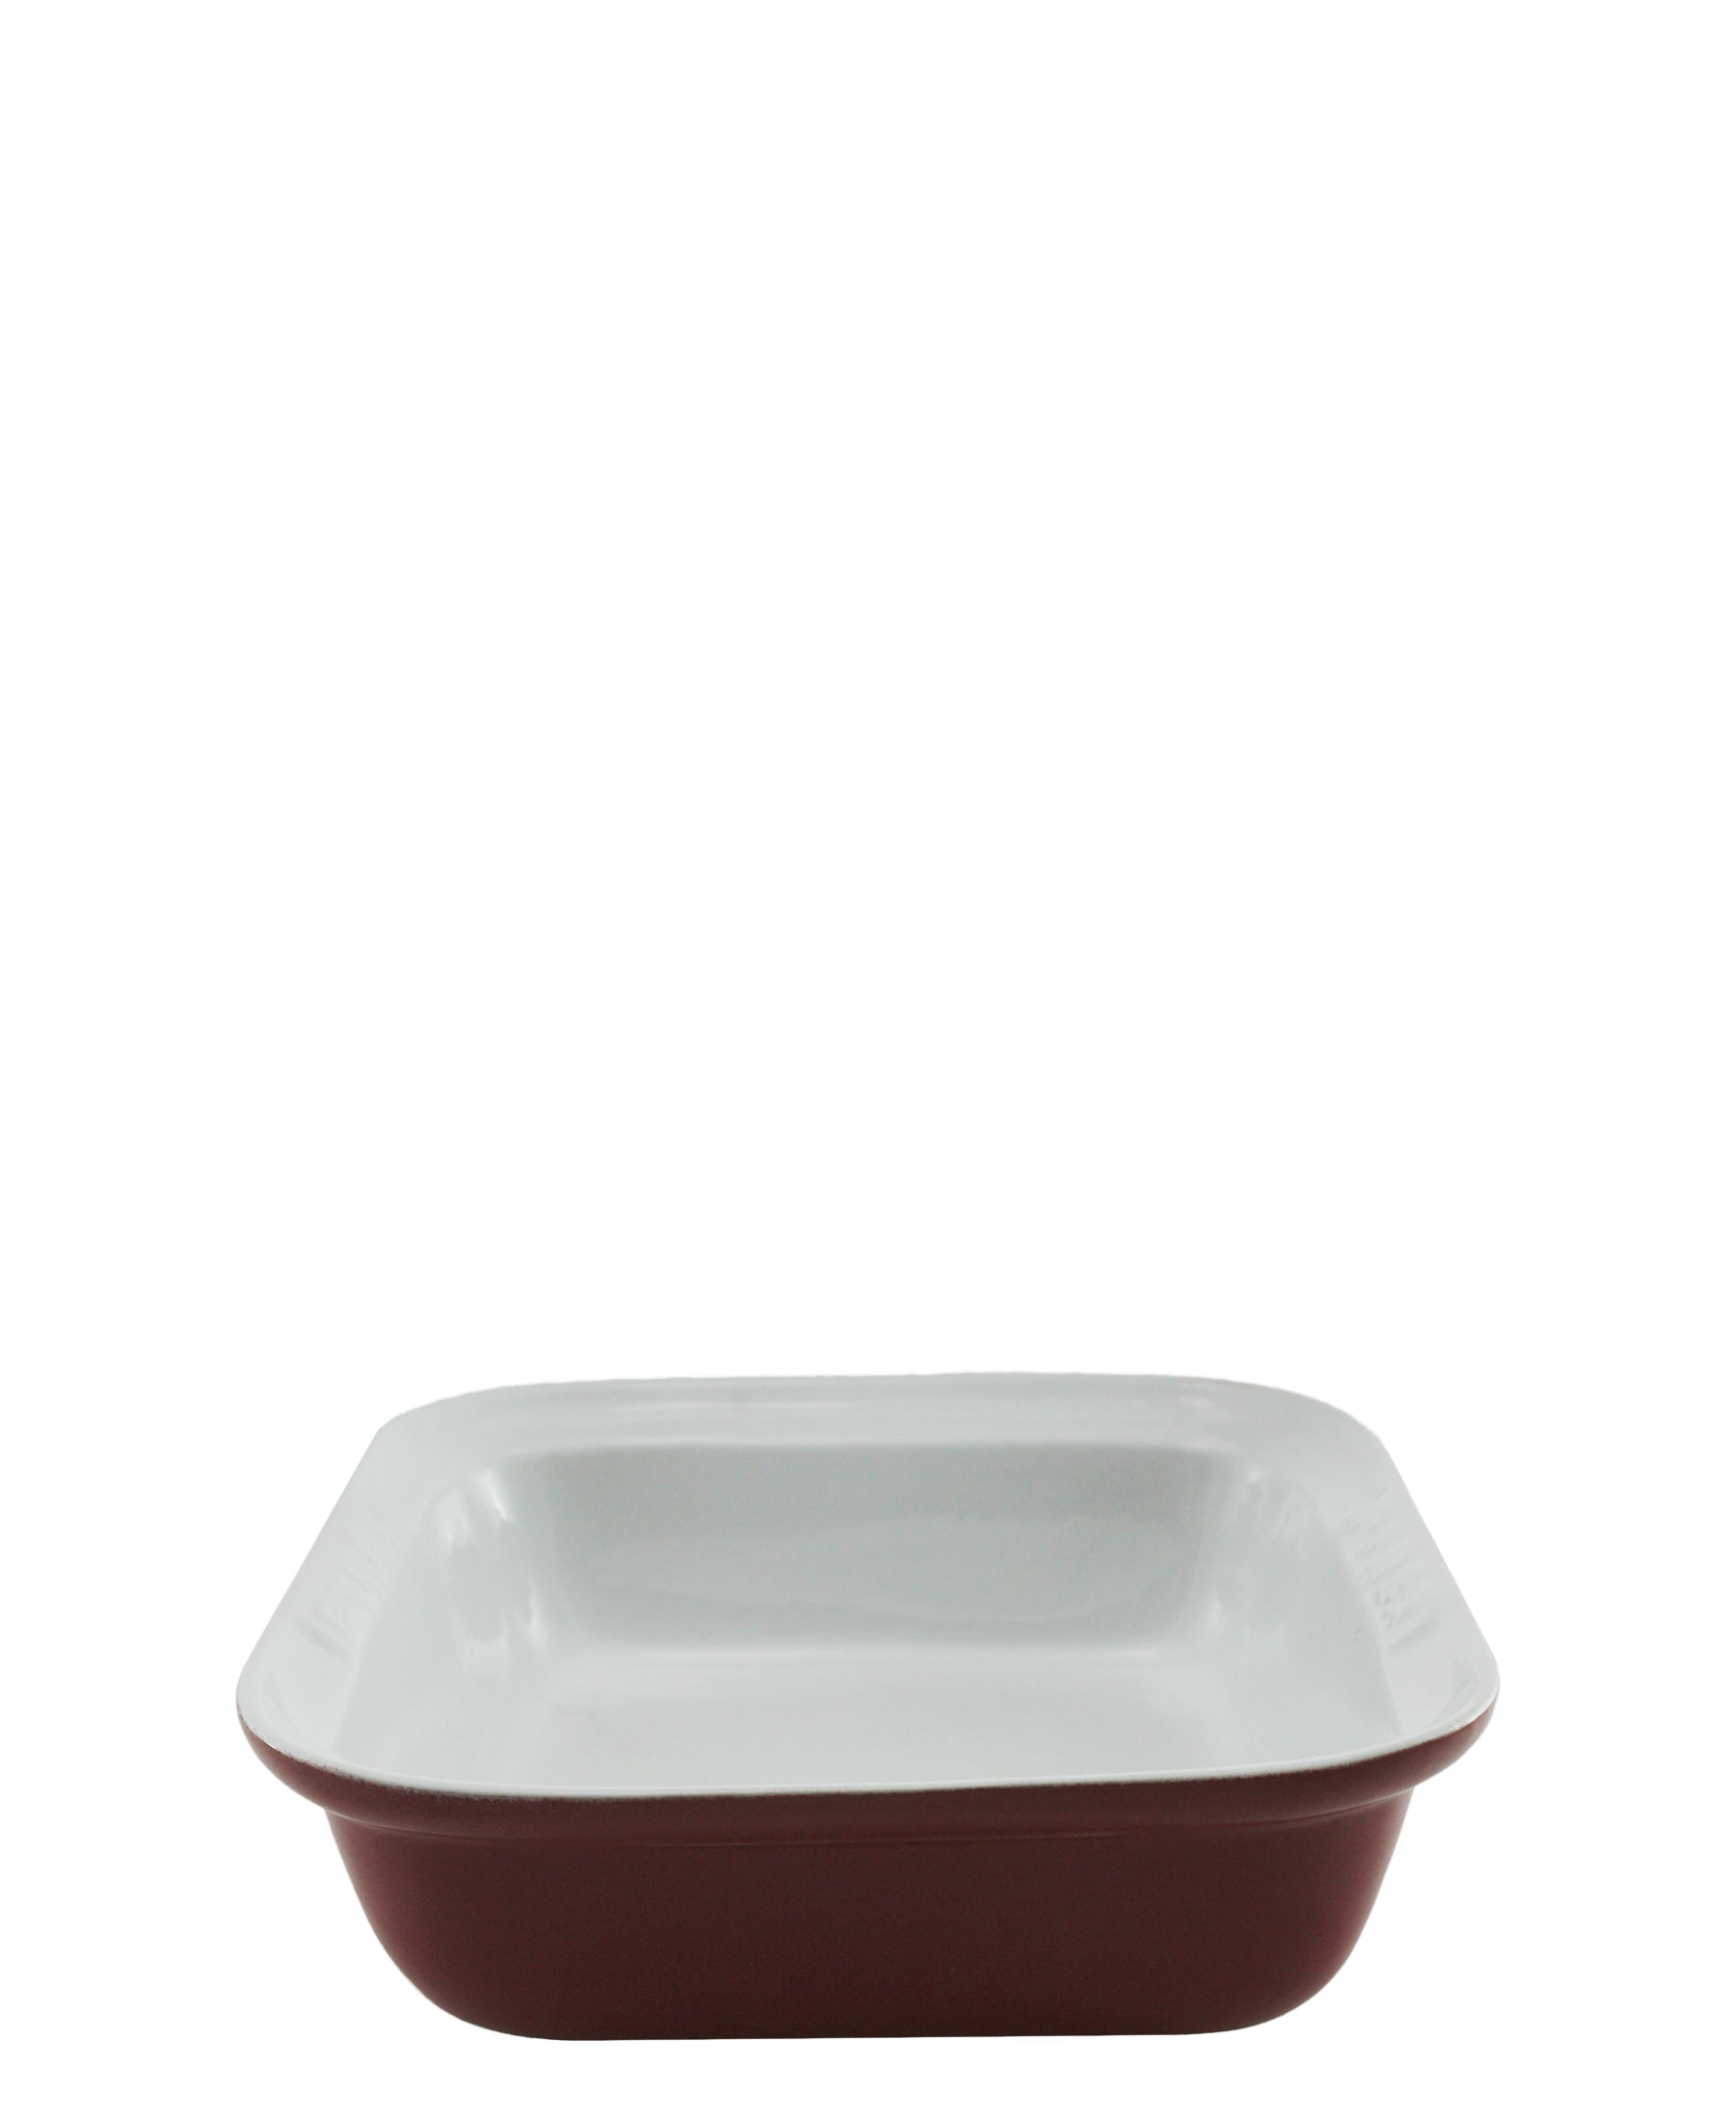 Pyrex Impressions Red Roaster 24 x 24cm